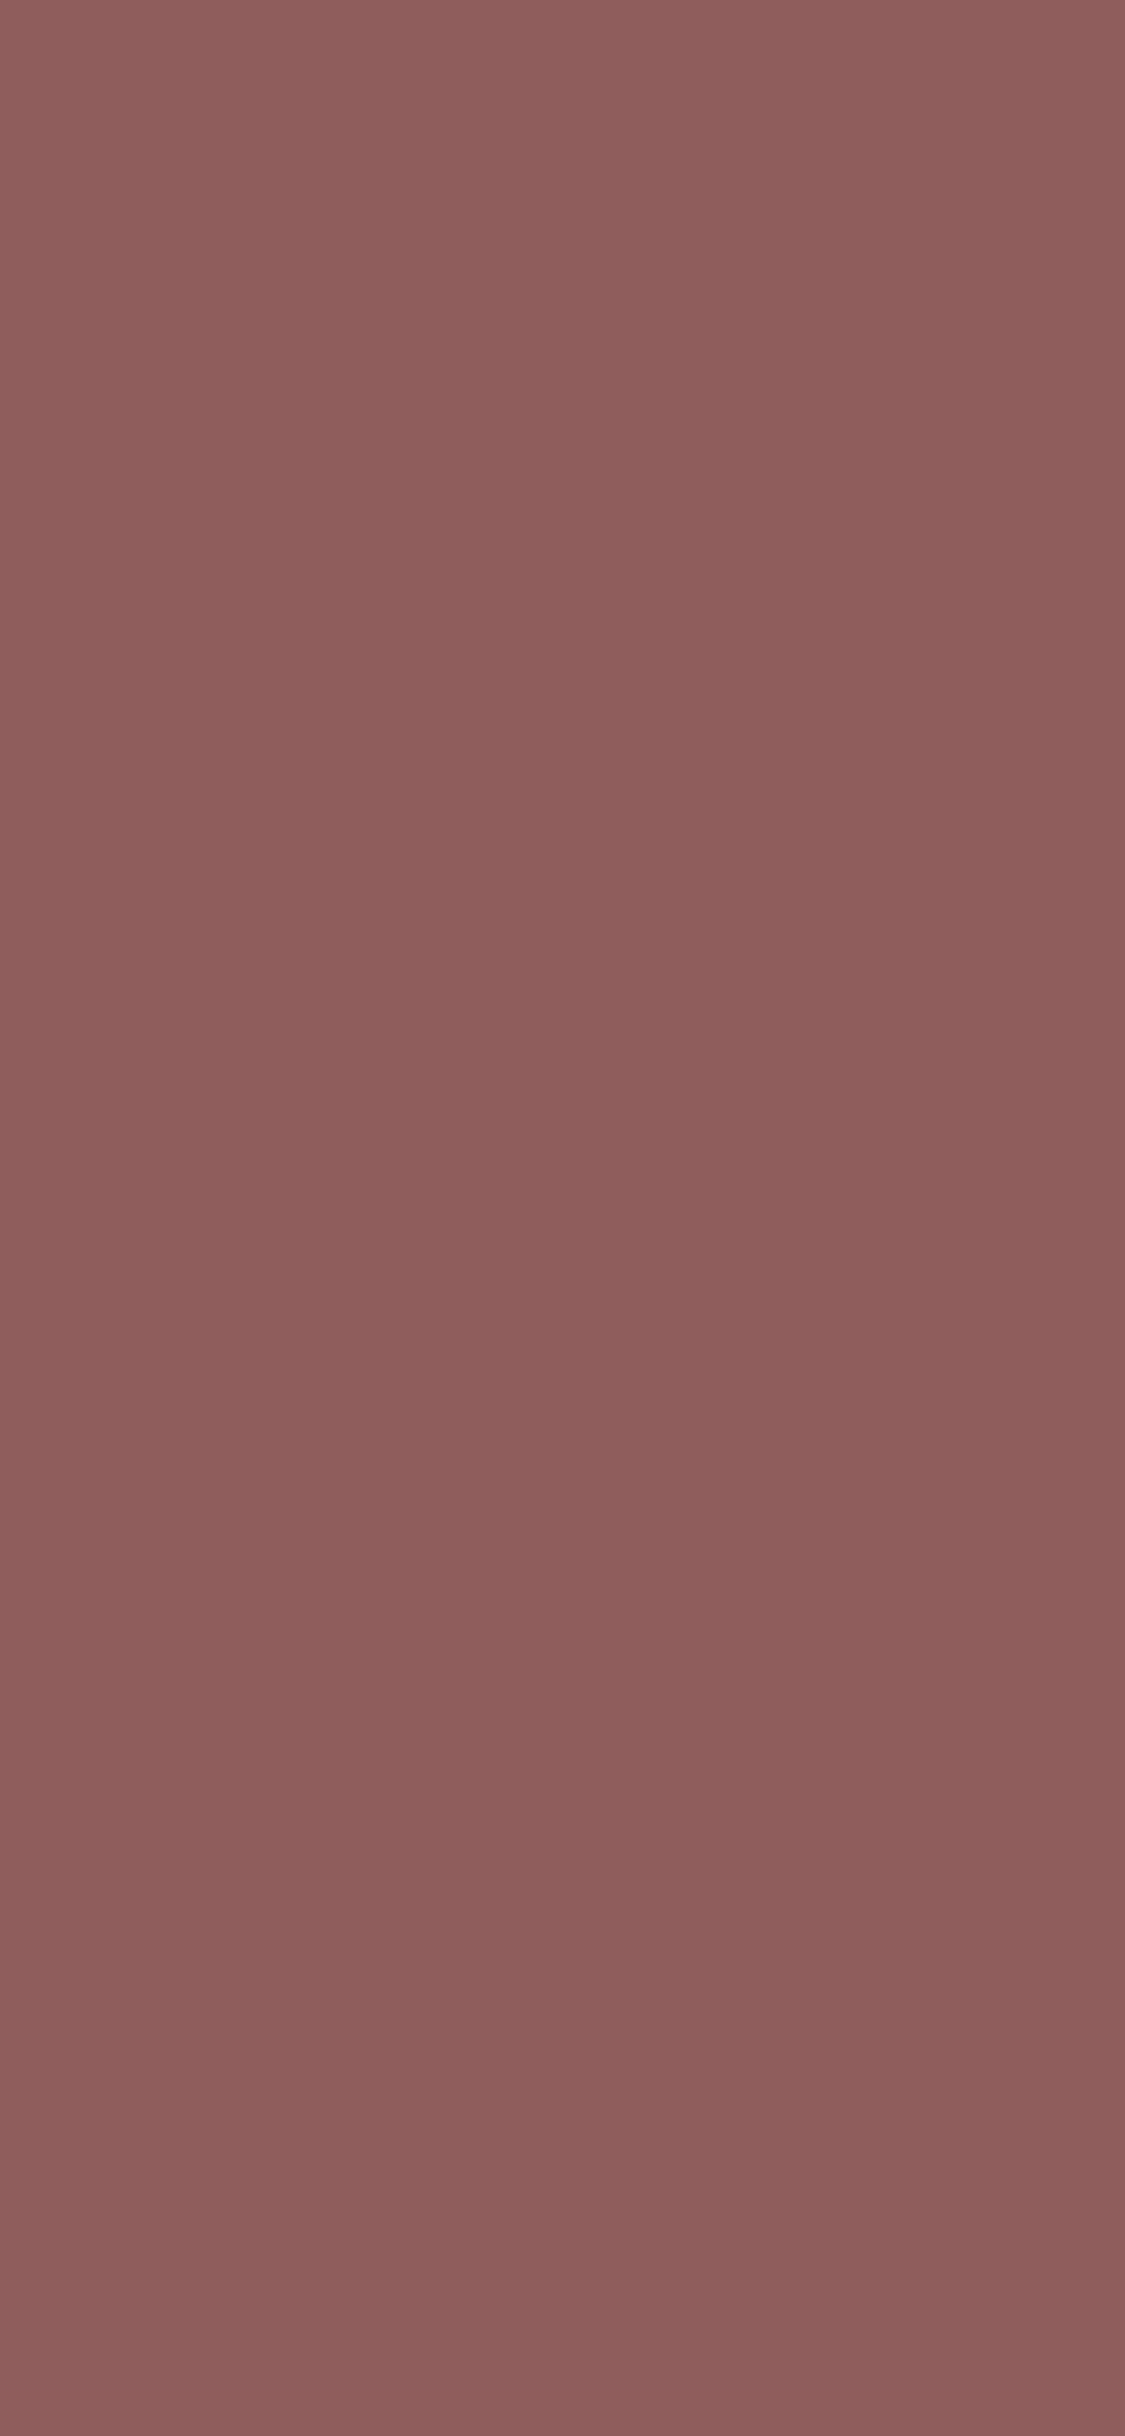 1125x2436 Rose Taupe Solid Color Background